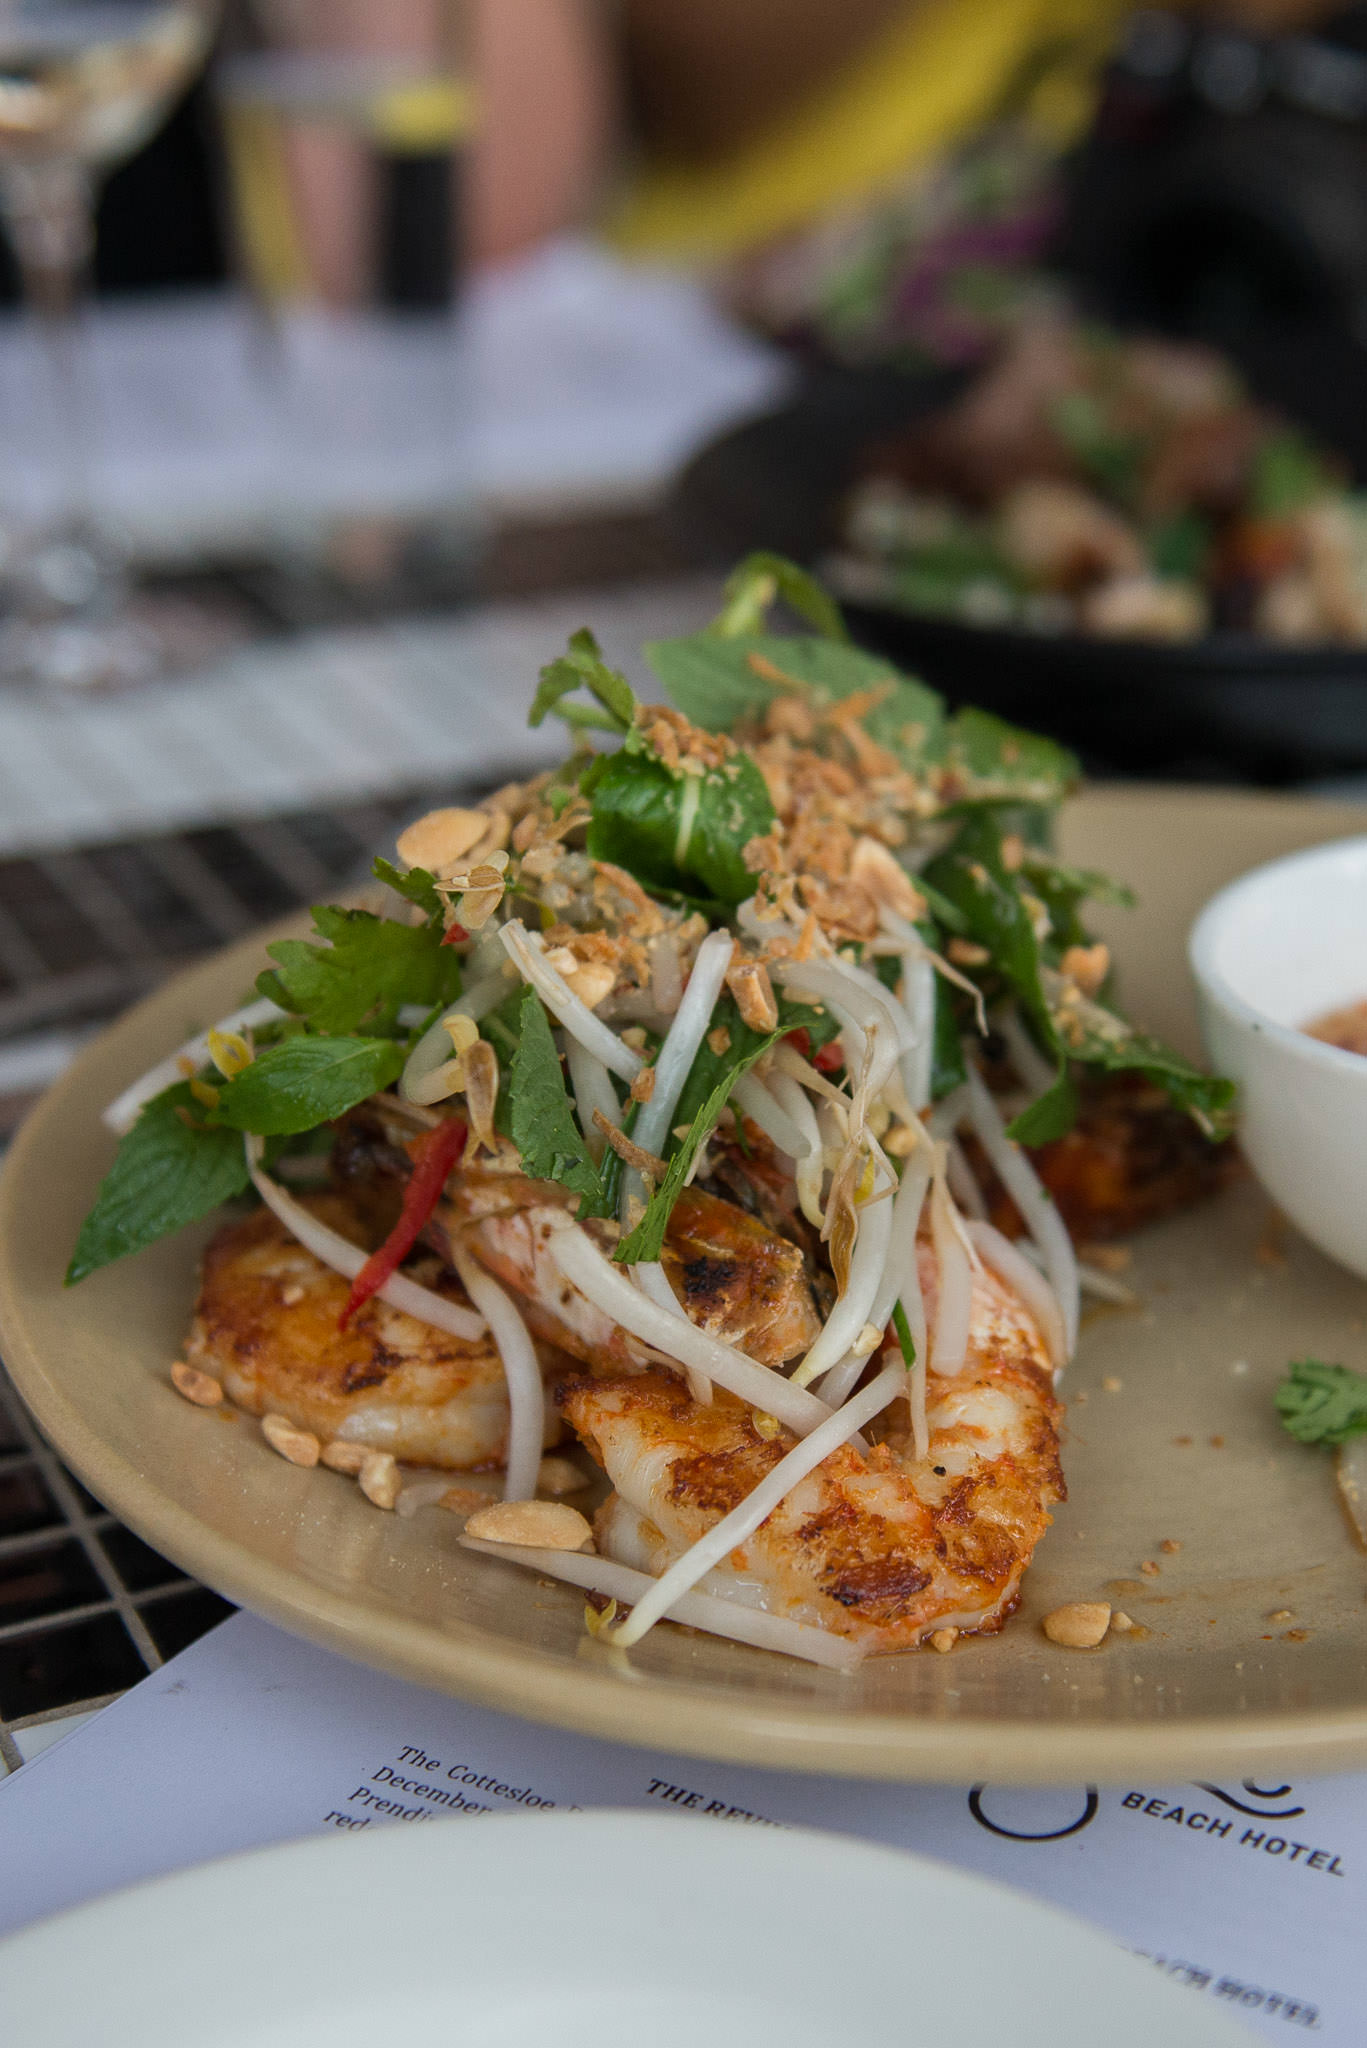 Grilled Carnarvon tiger prawns, pineapple, chilli & lime salsa, bean sprout salad (AU$34)